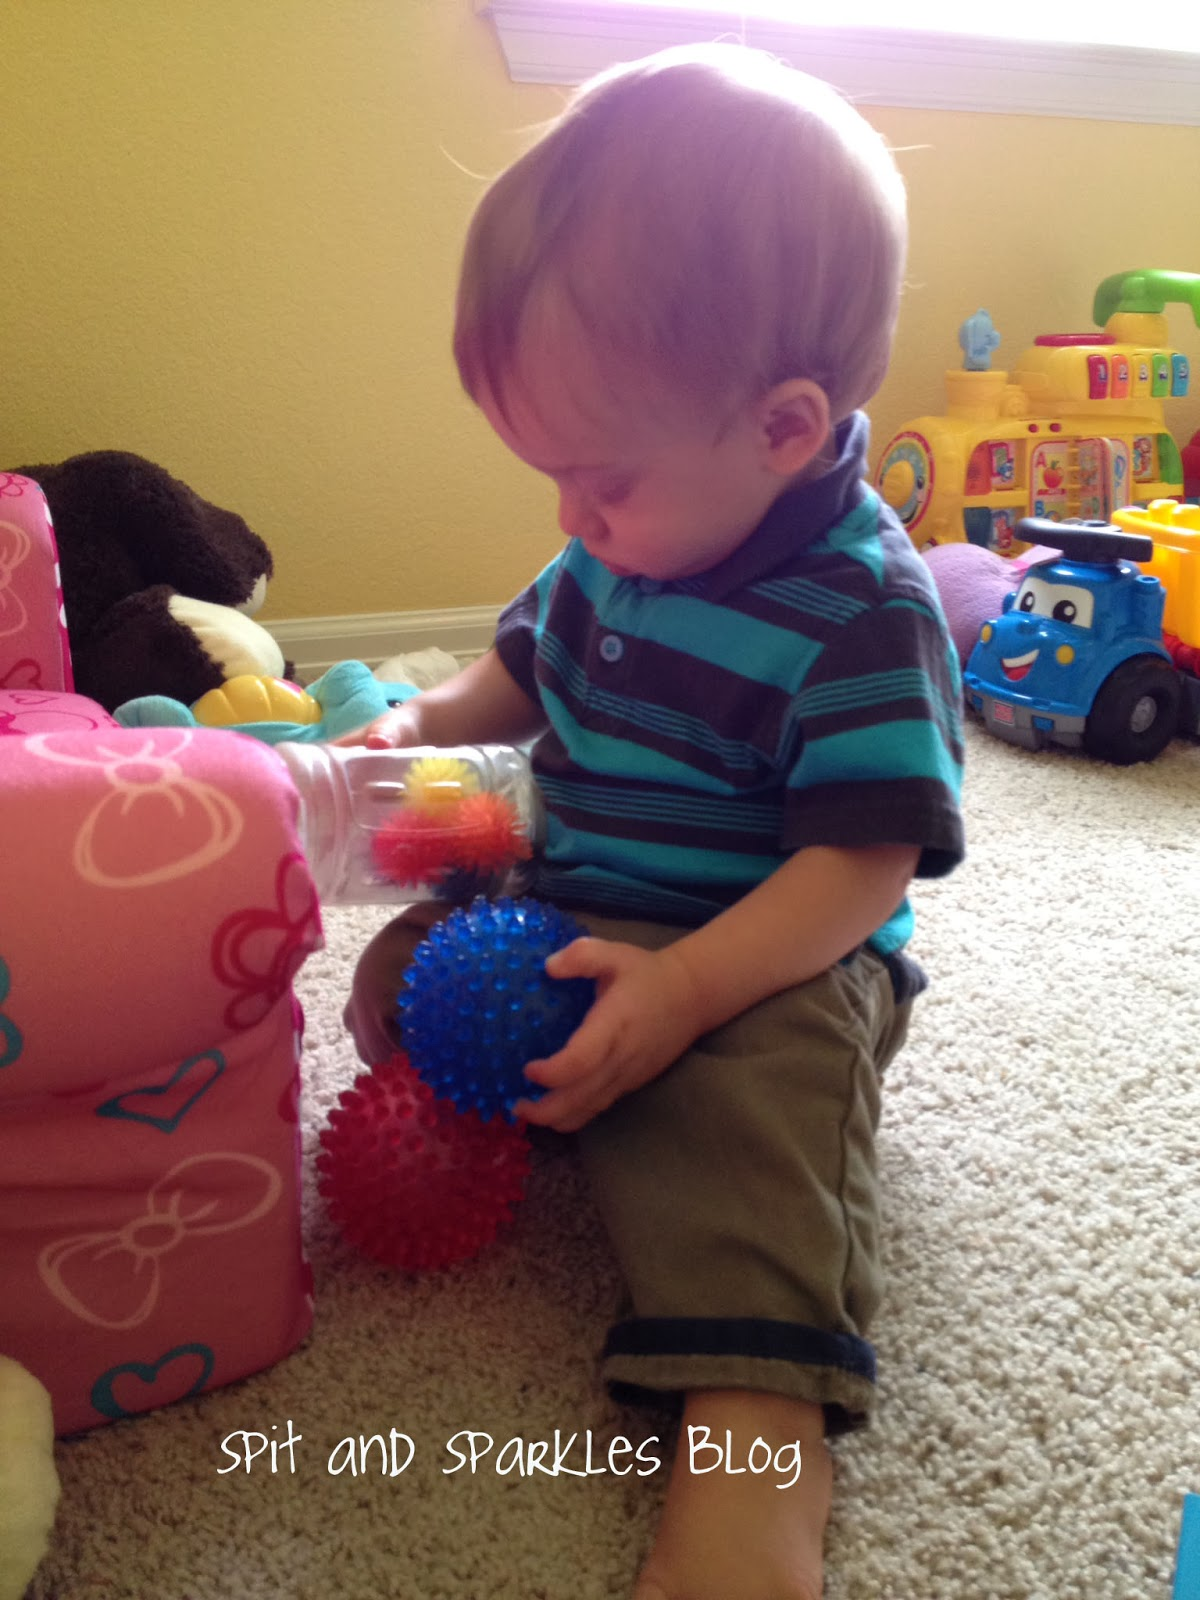 Tot school for one year olds- gather up a bunch of the same toy of different sizes, colors, textures and explore. Take turns saying the name of the toy to learn object recognition. #totschool #homeschool